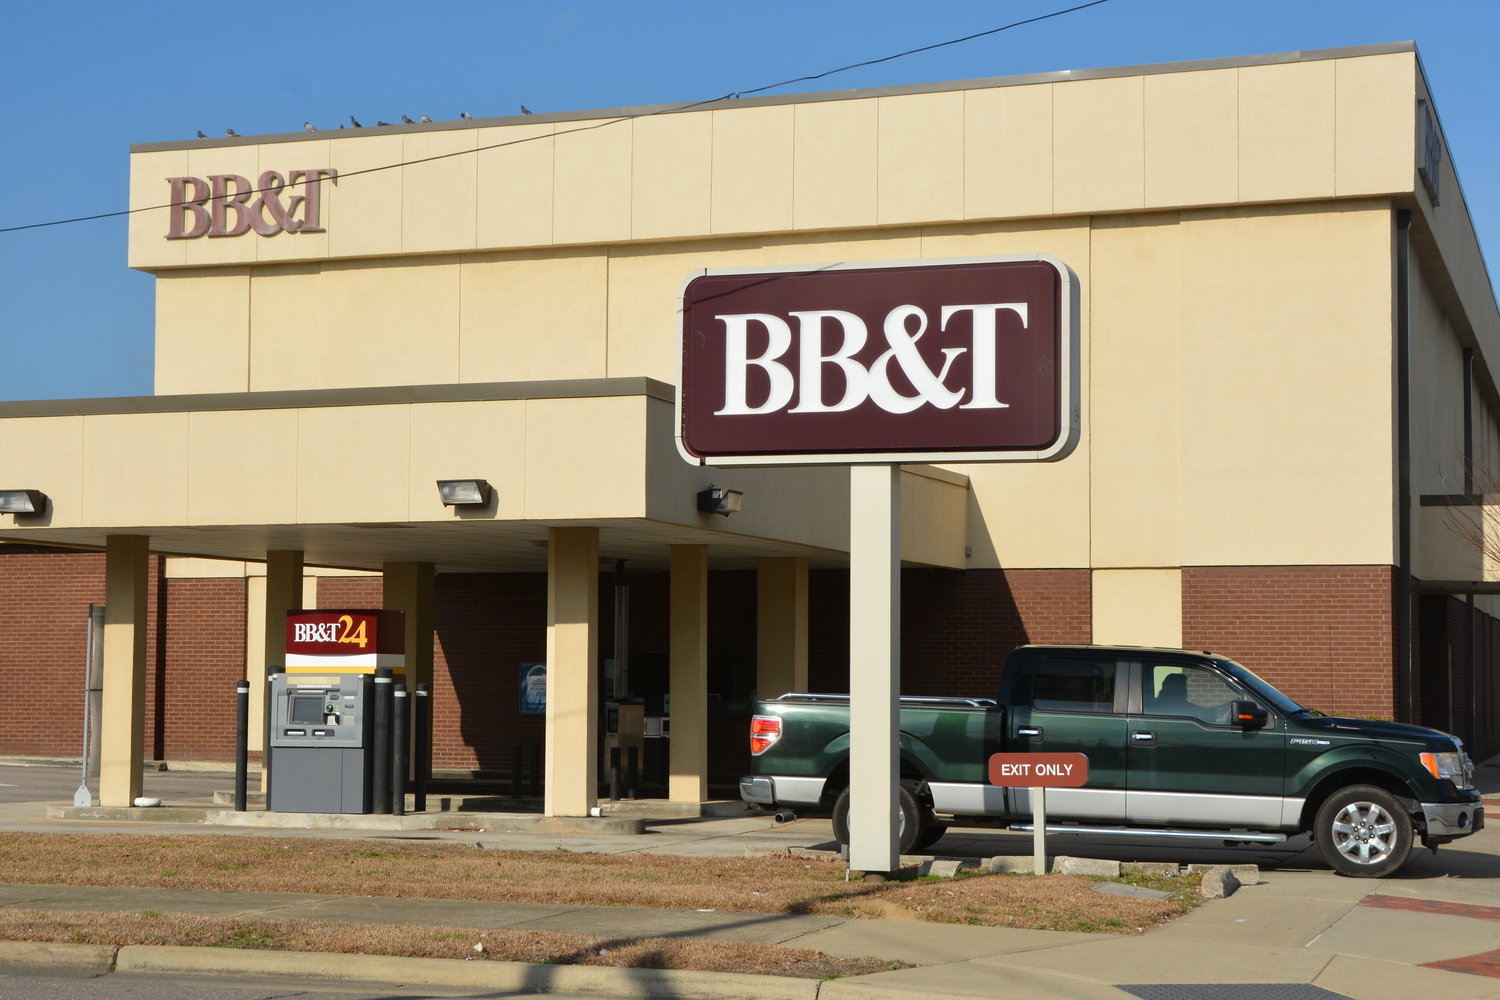 The main location for BB&T in Dunn, shown here, will undergo a name when the bank merges with SunTrust Bank later this year. The merger was announced Thursday. It is unclear how local branch locations of both banks will be affected when the merger is completed.